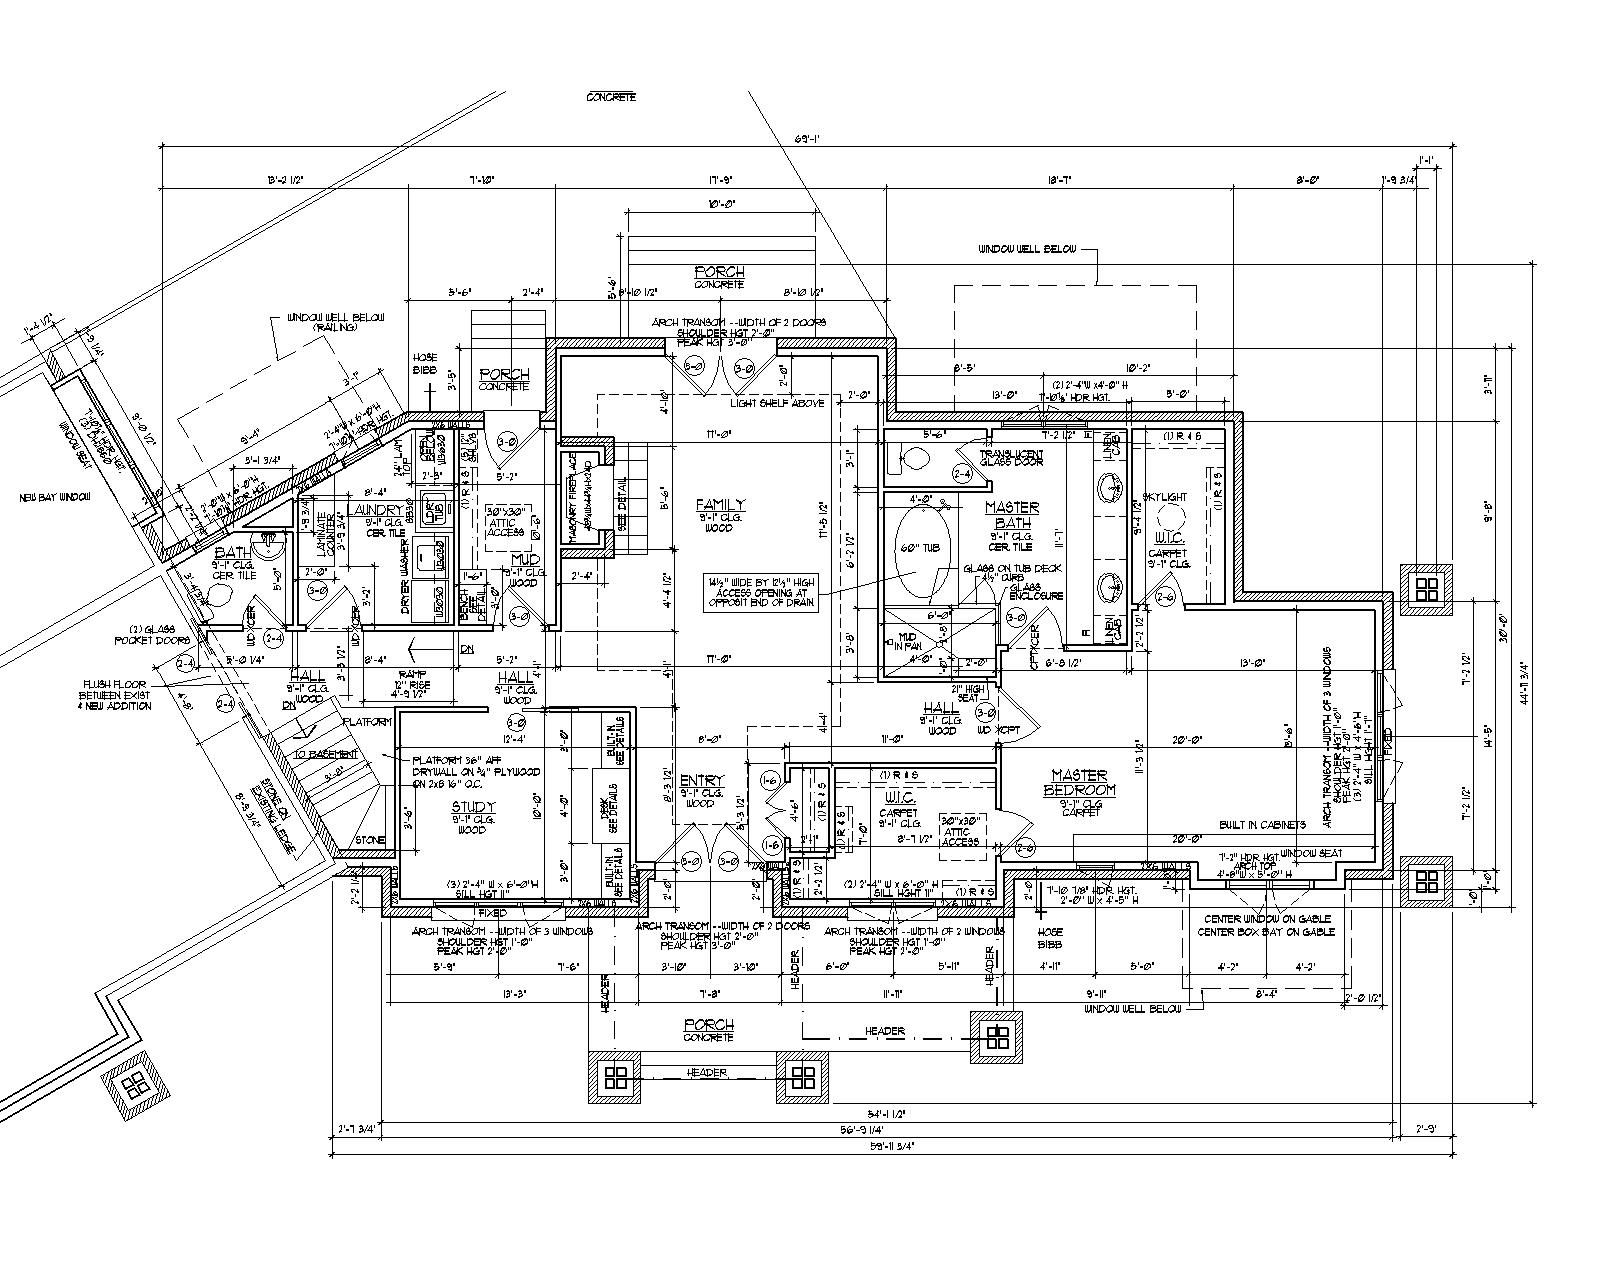 2d autocad house plans residential building drawings cad for Blueprint drawing program